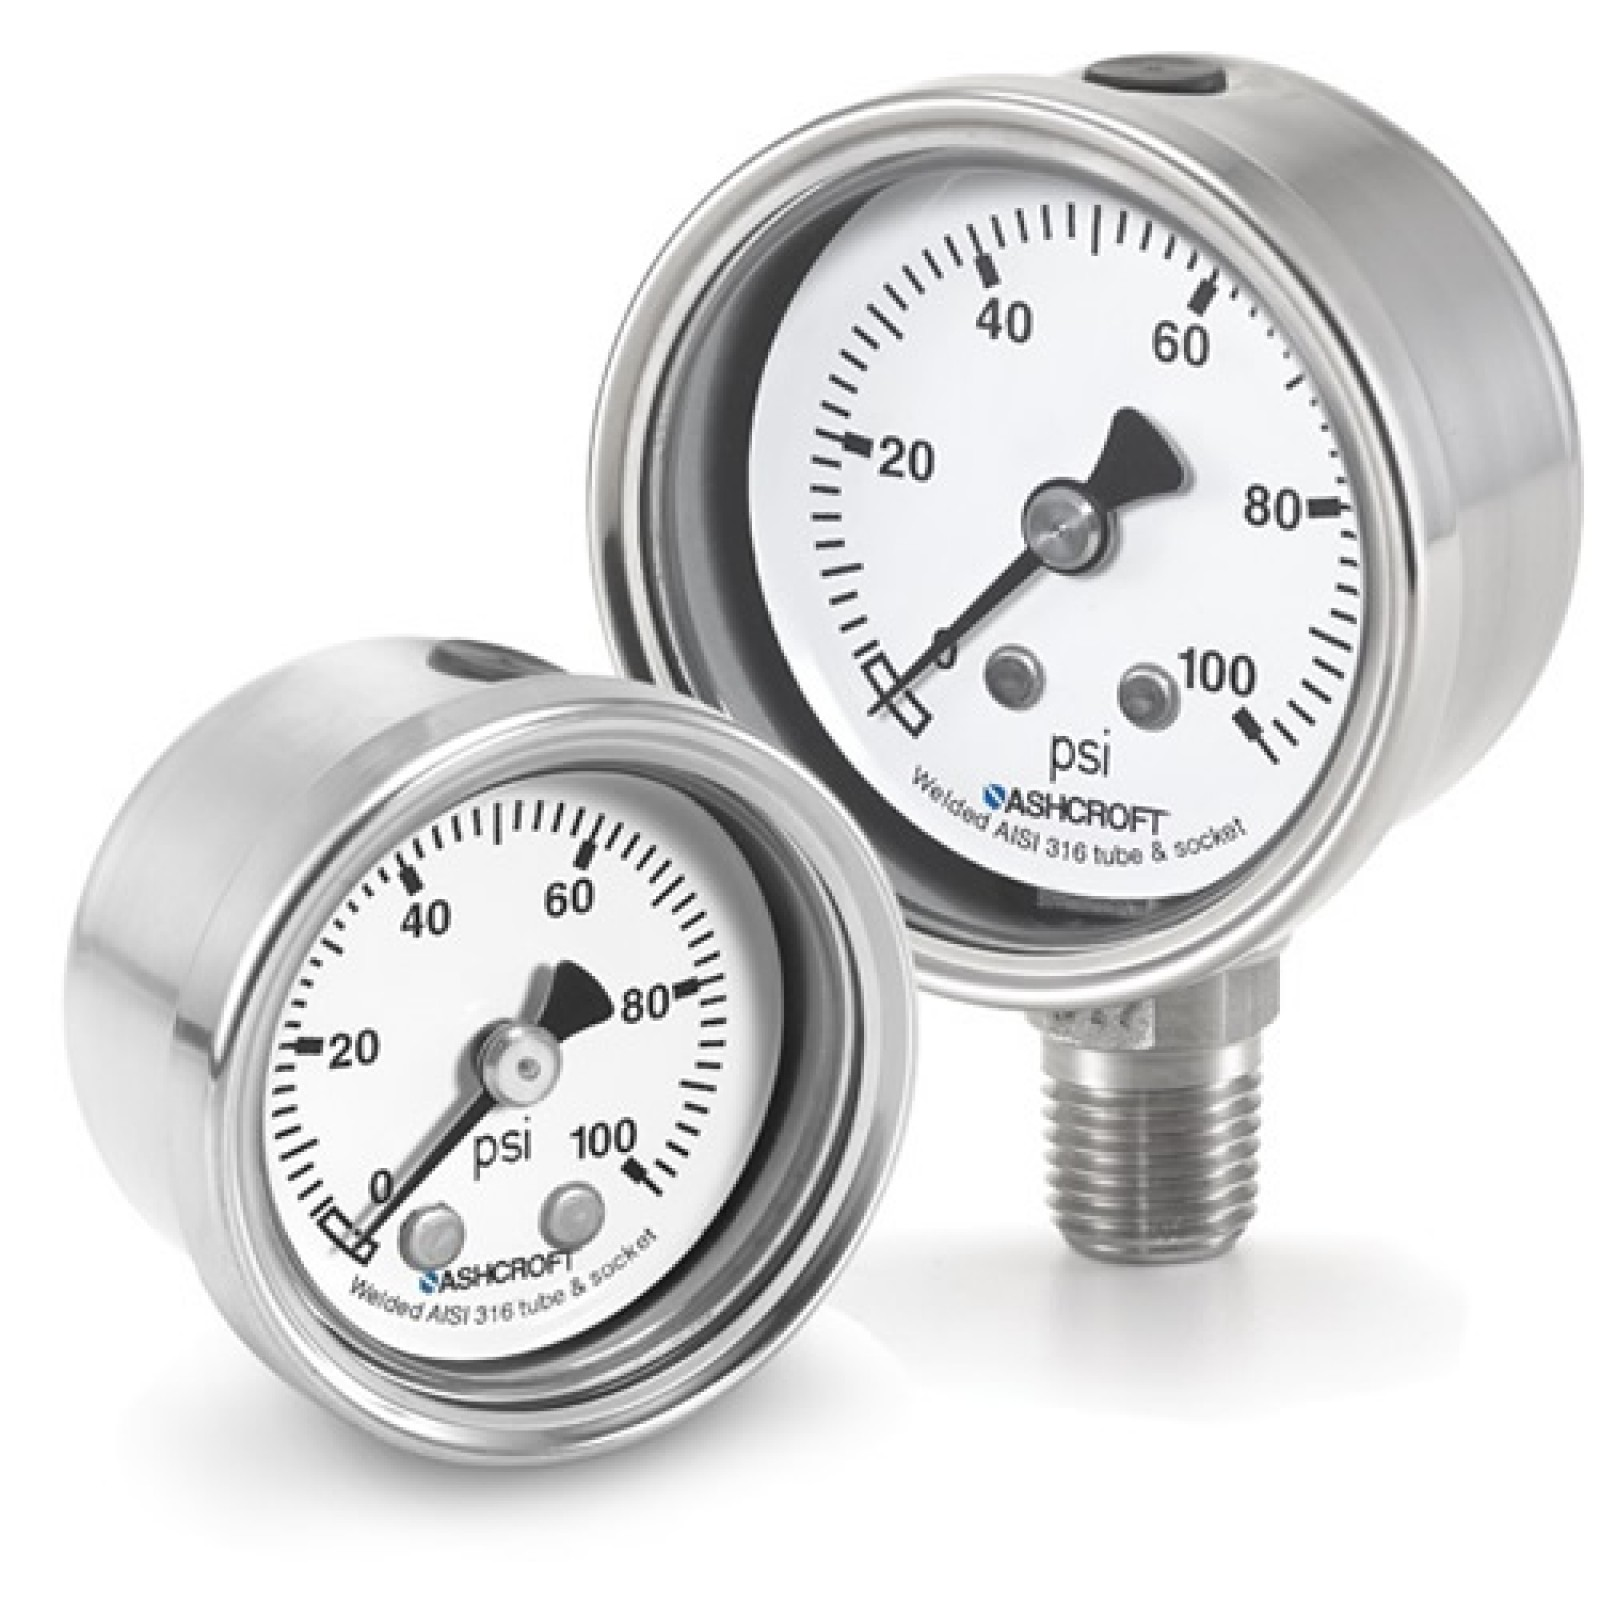 "63 1008S 02B XLL 160#/KP - Pressure Gauge, 63mm stainless 1/4"" NPT Back conn & Case, Plus Performance, 0/160 psi"